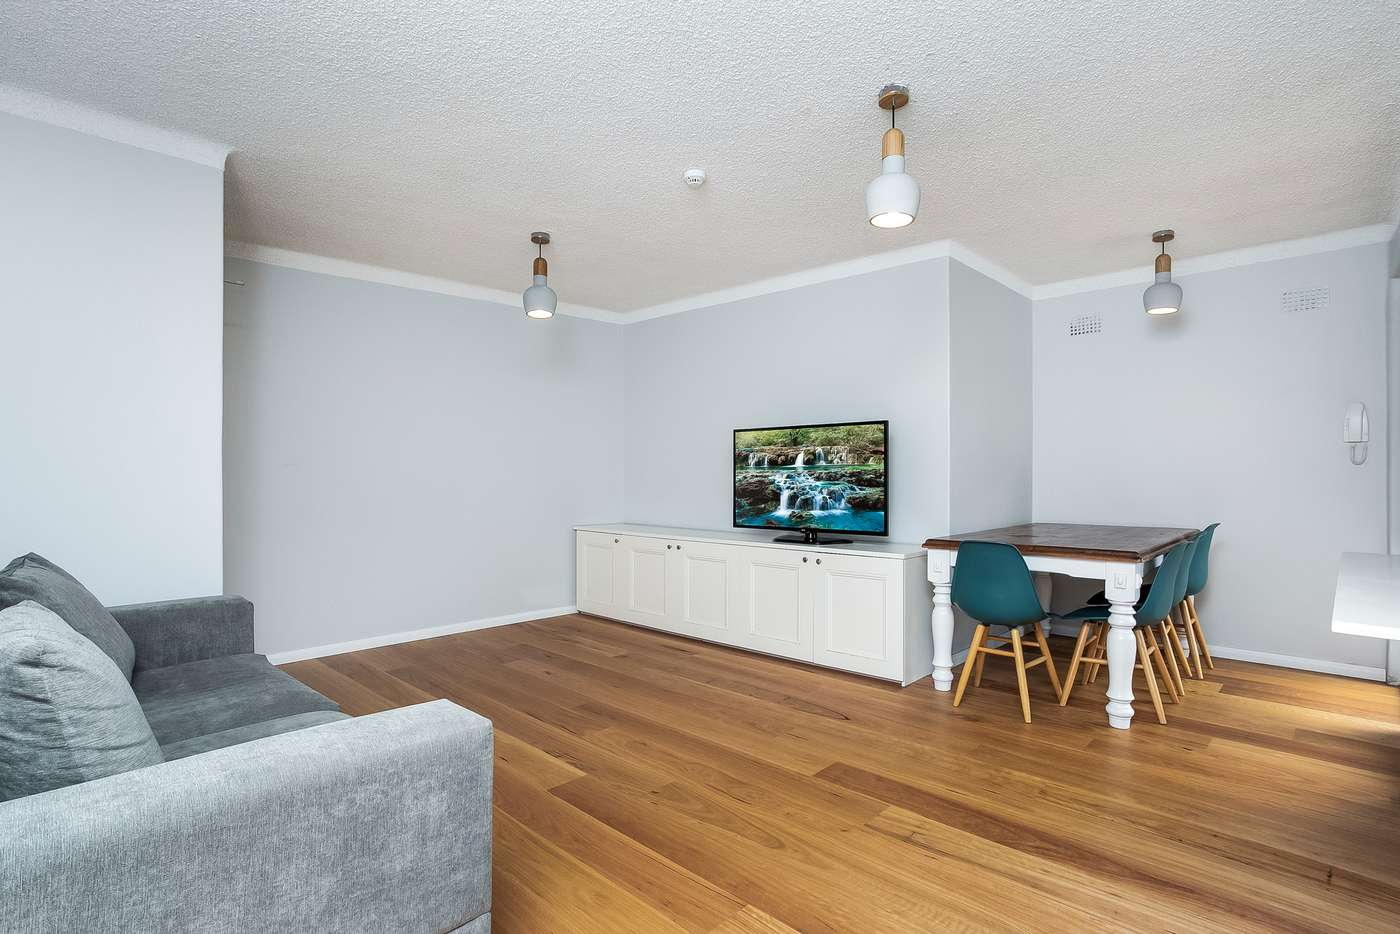 Main view of Homely apartment listing, 17/1 Lovett Street, Manly Vale NSW 2093